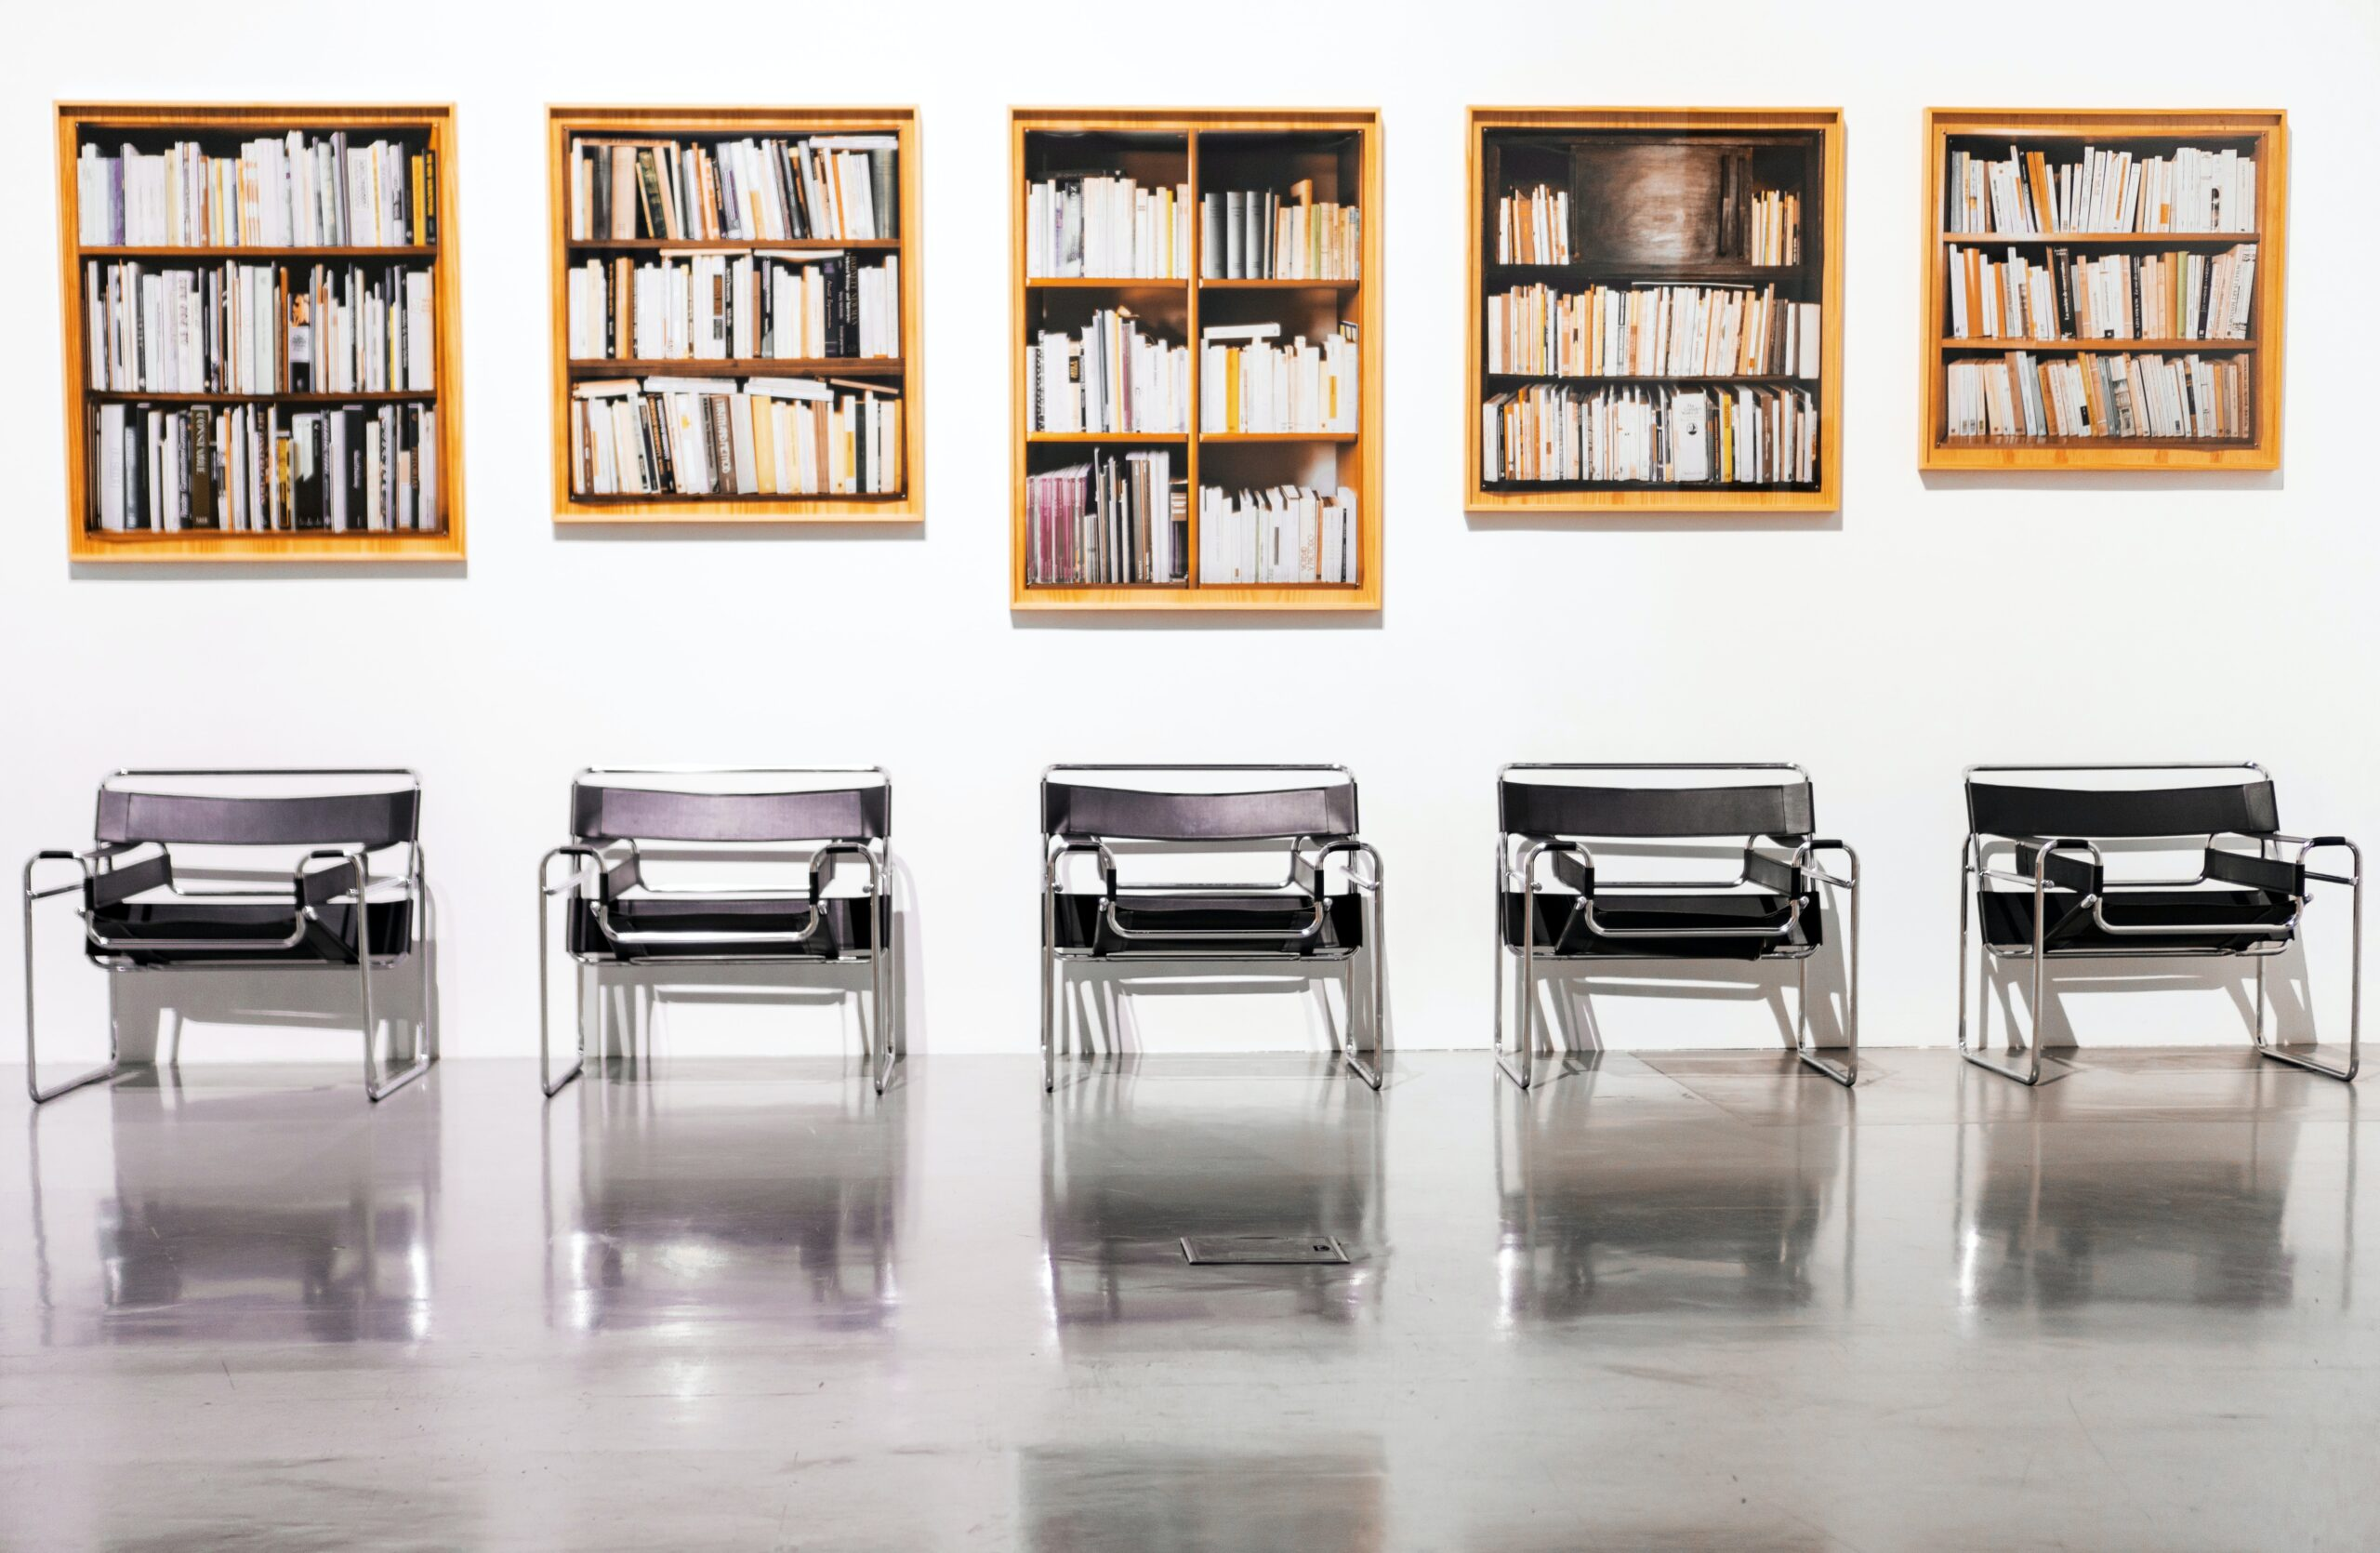 Four chairs lined up with bookshelves above each of them.